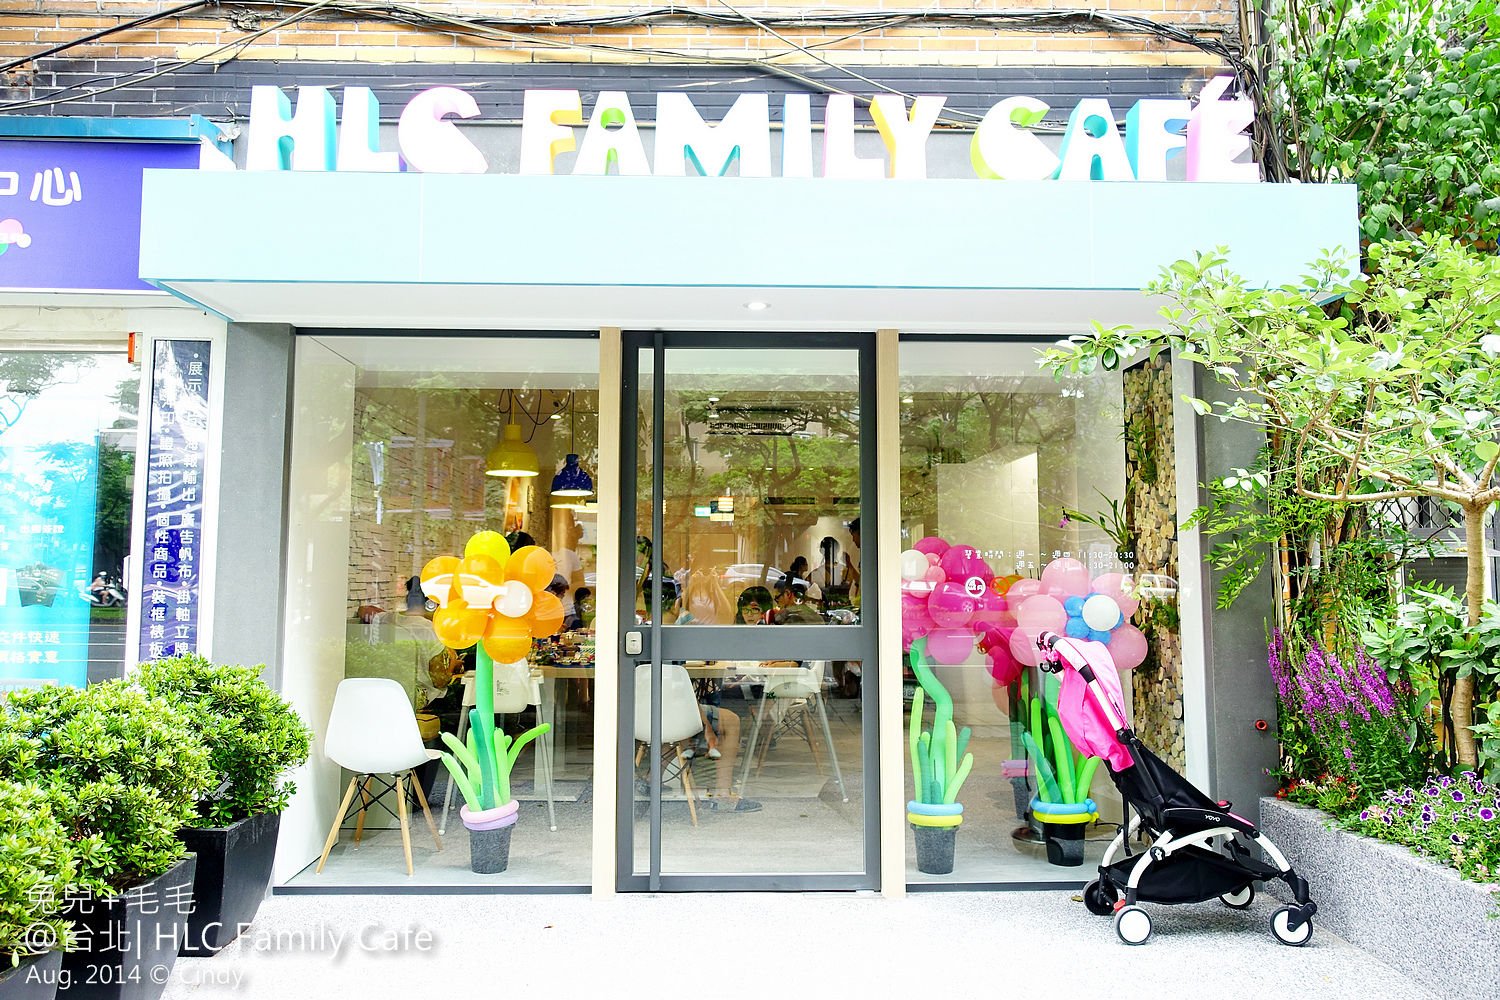 HLC family cafe-01.jpg